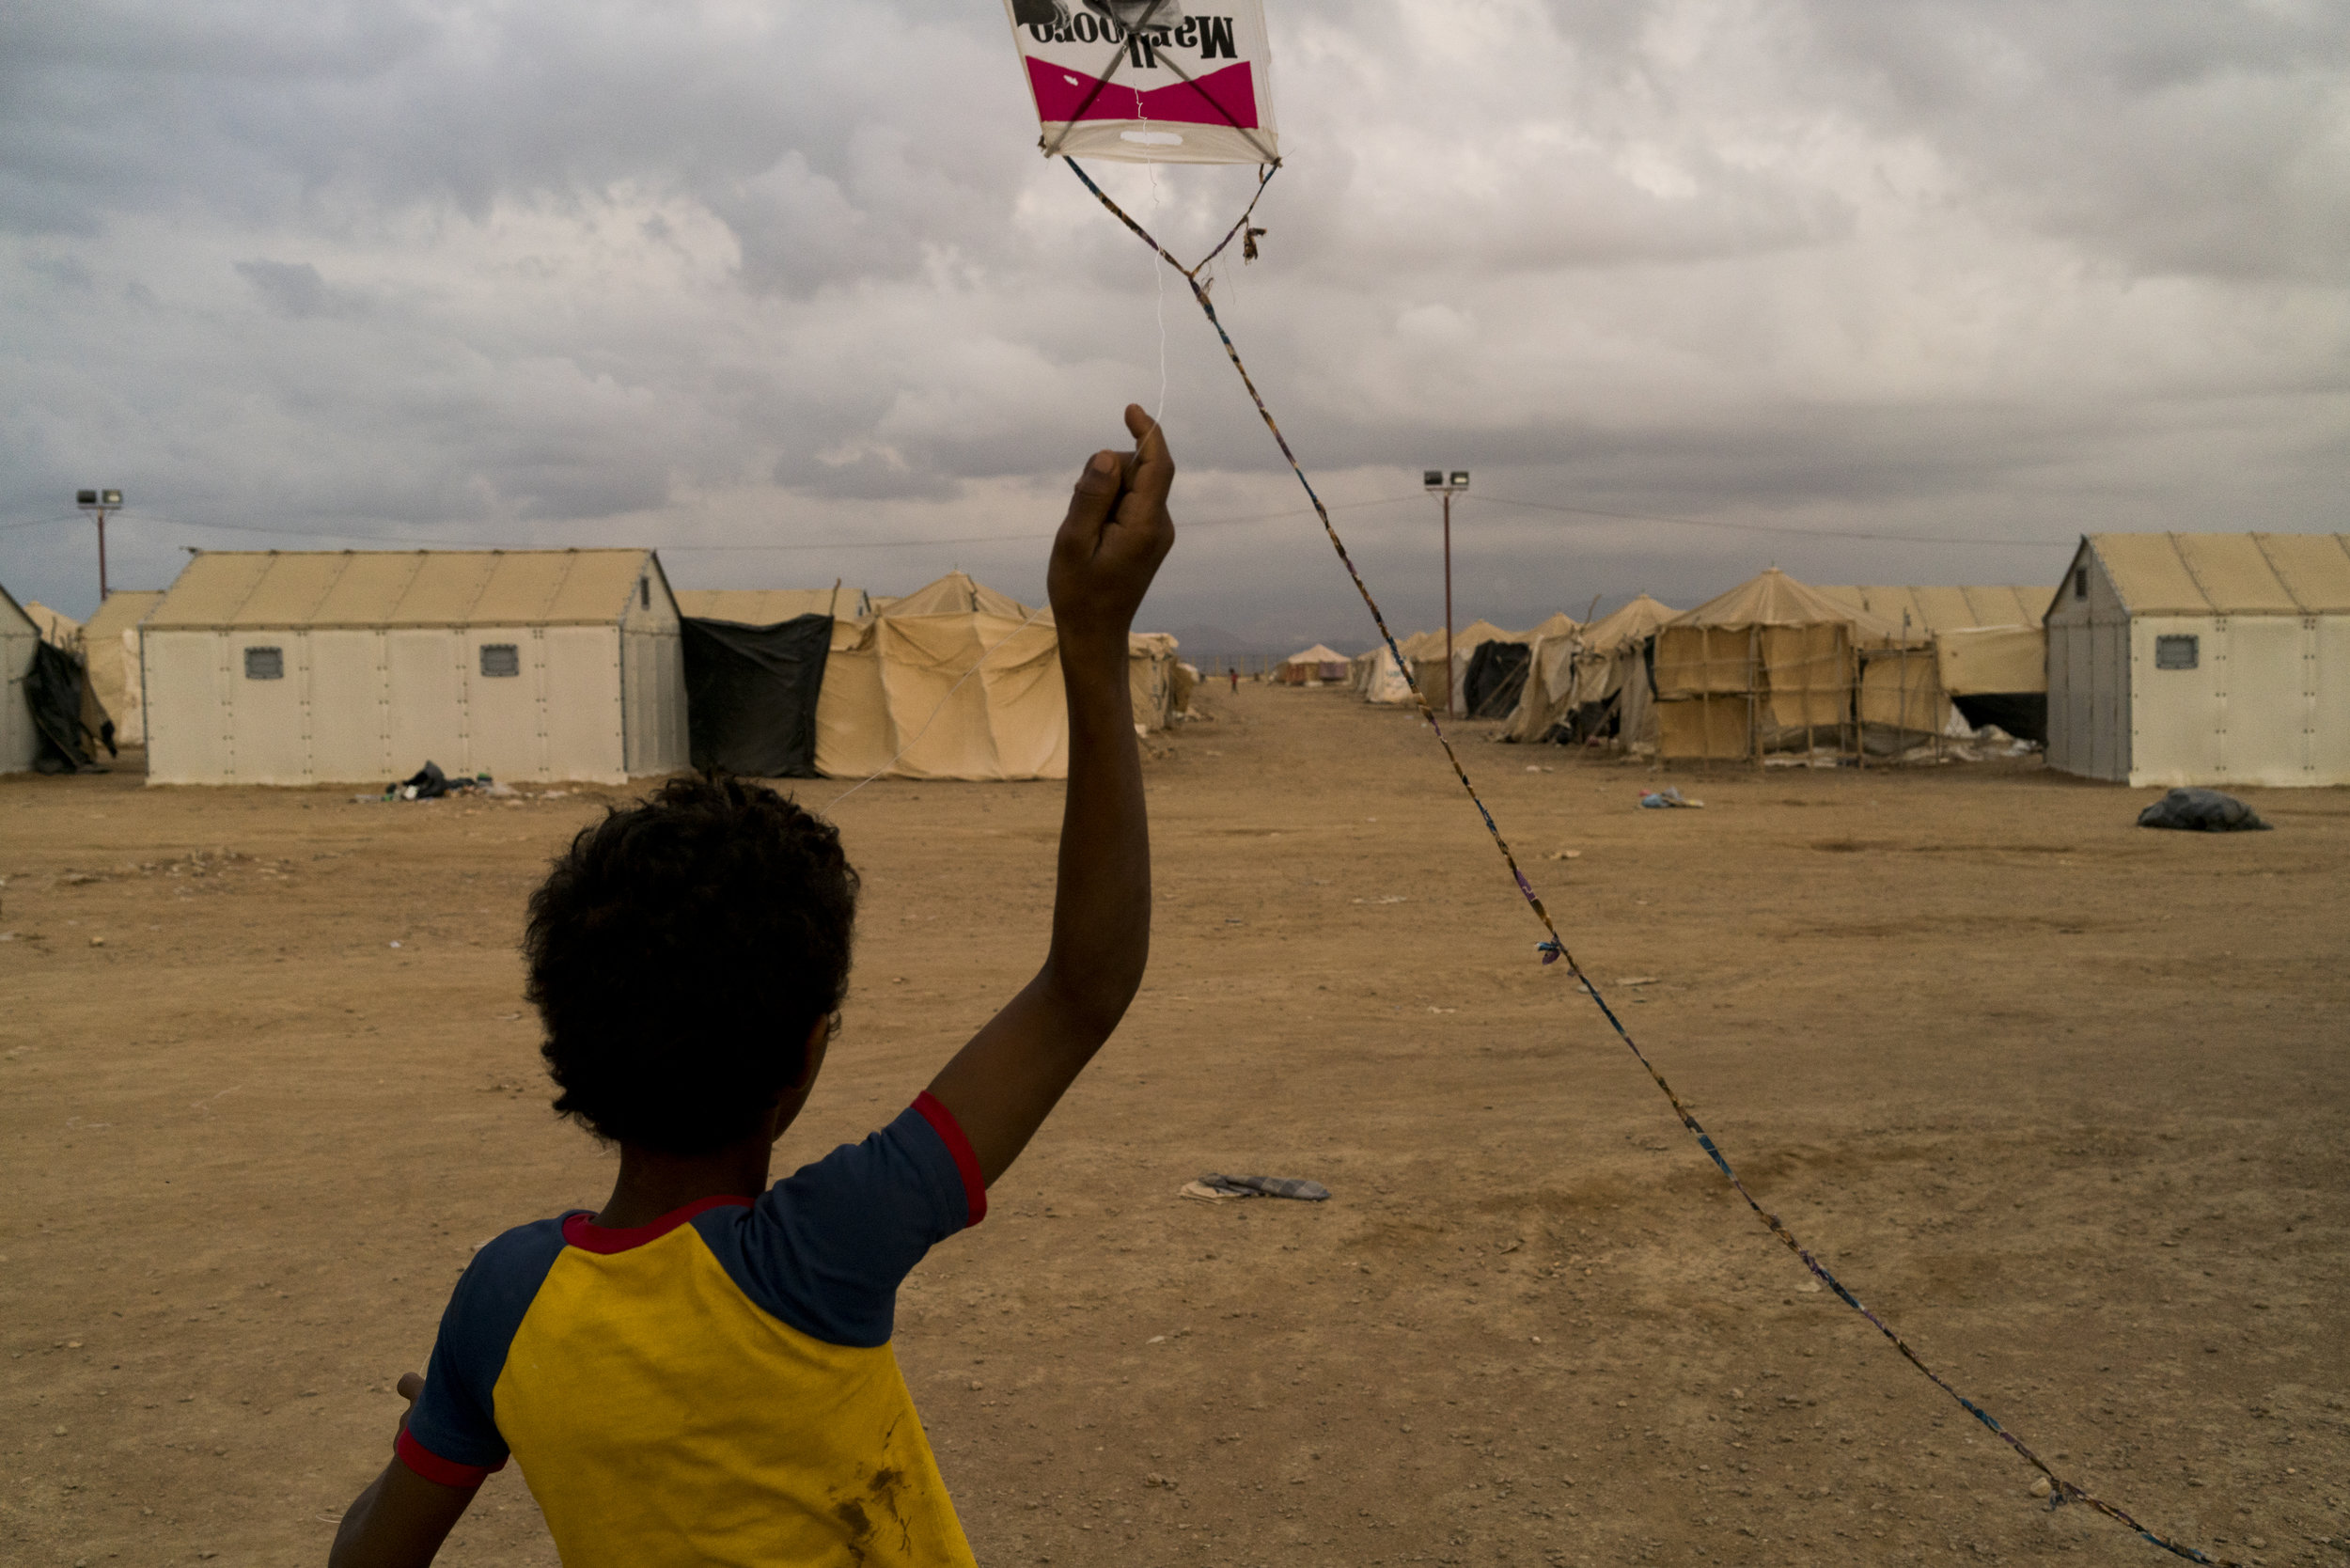 A boy flies his homemade kite over the roofs of the tents that house over 3,000 Yemenis refugees who have fled to Obock, Djibouti, January 13, 2016.